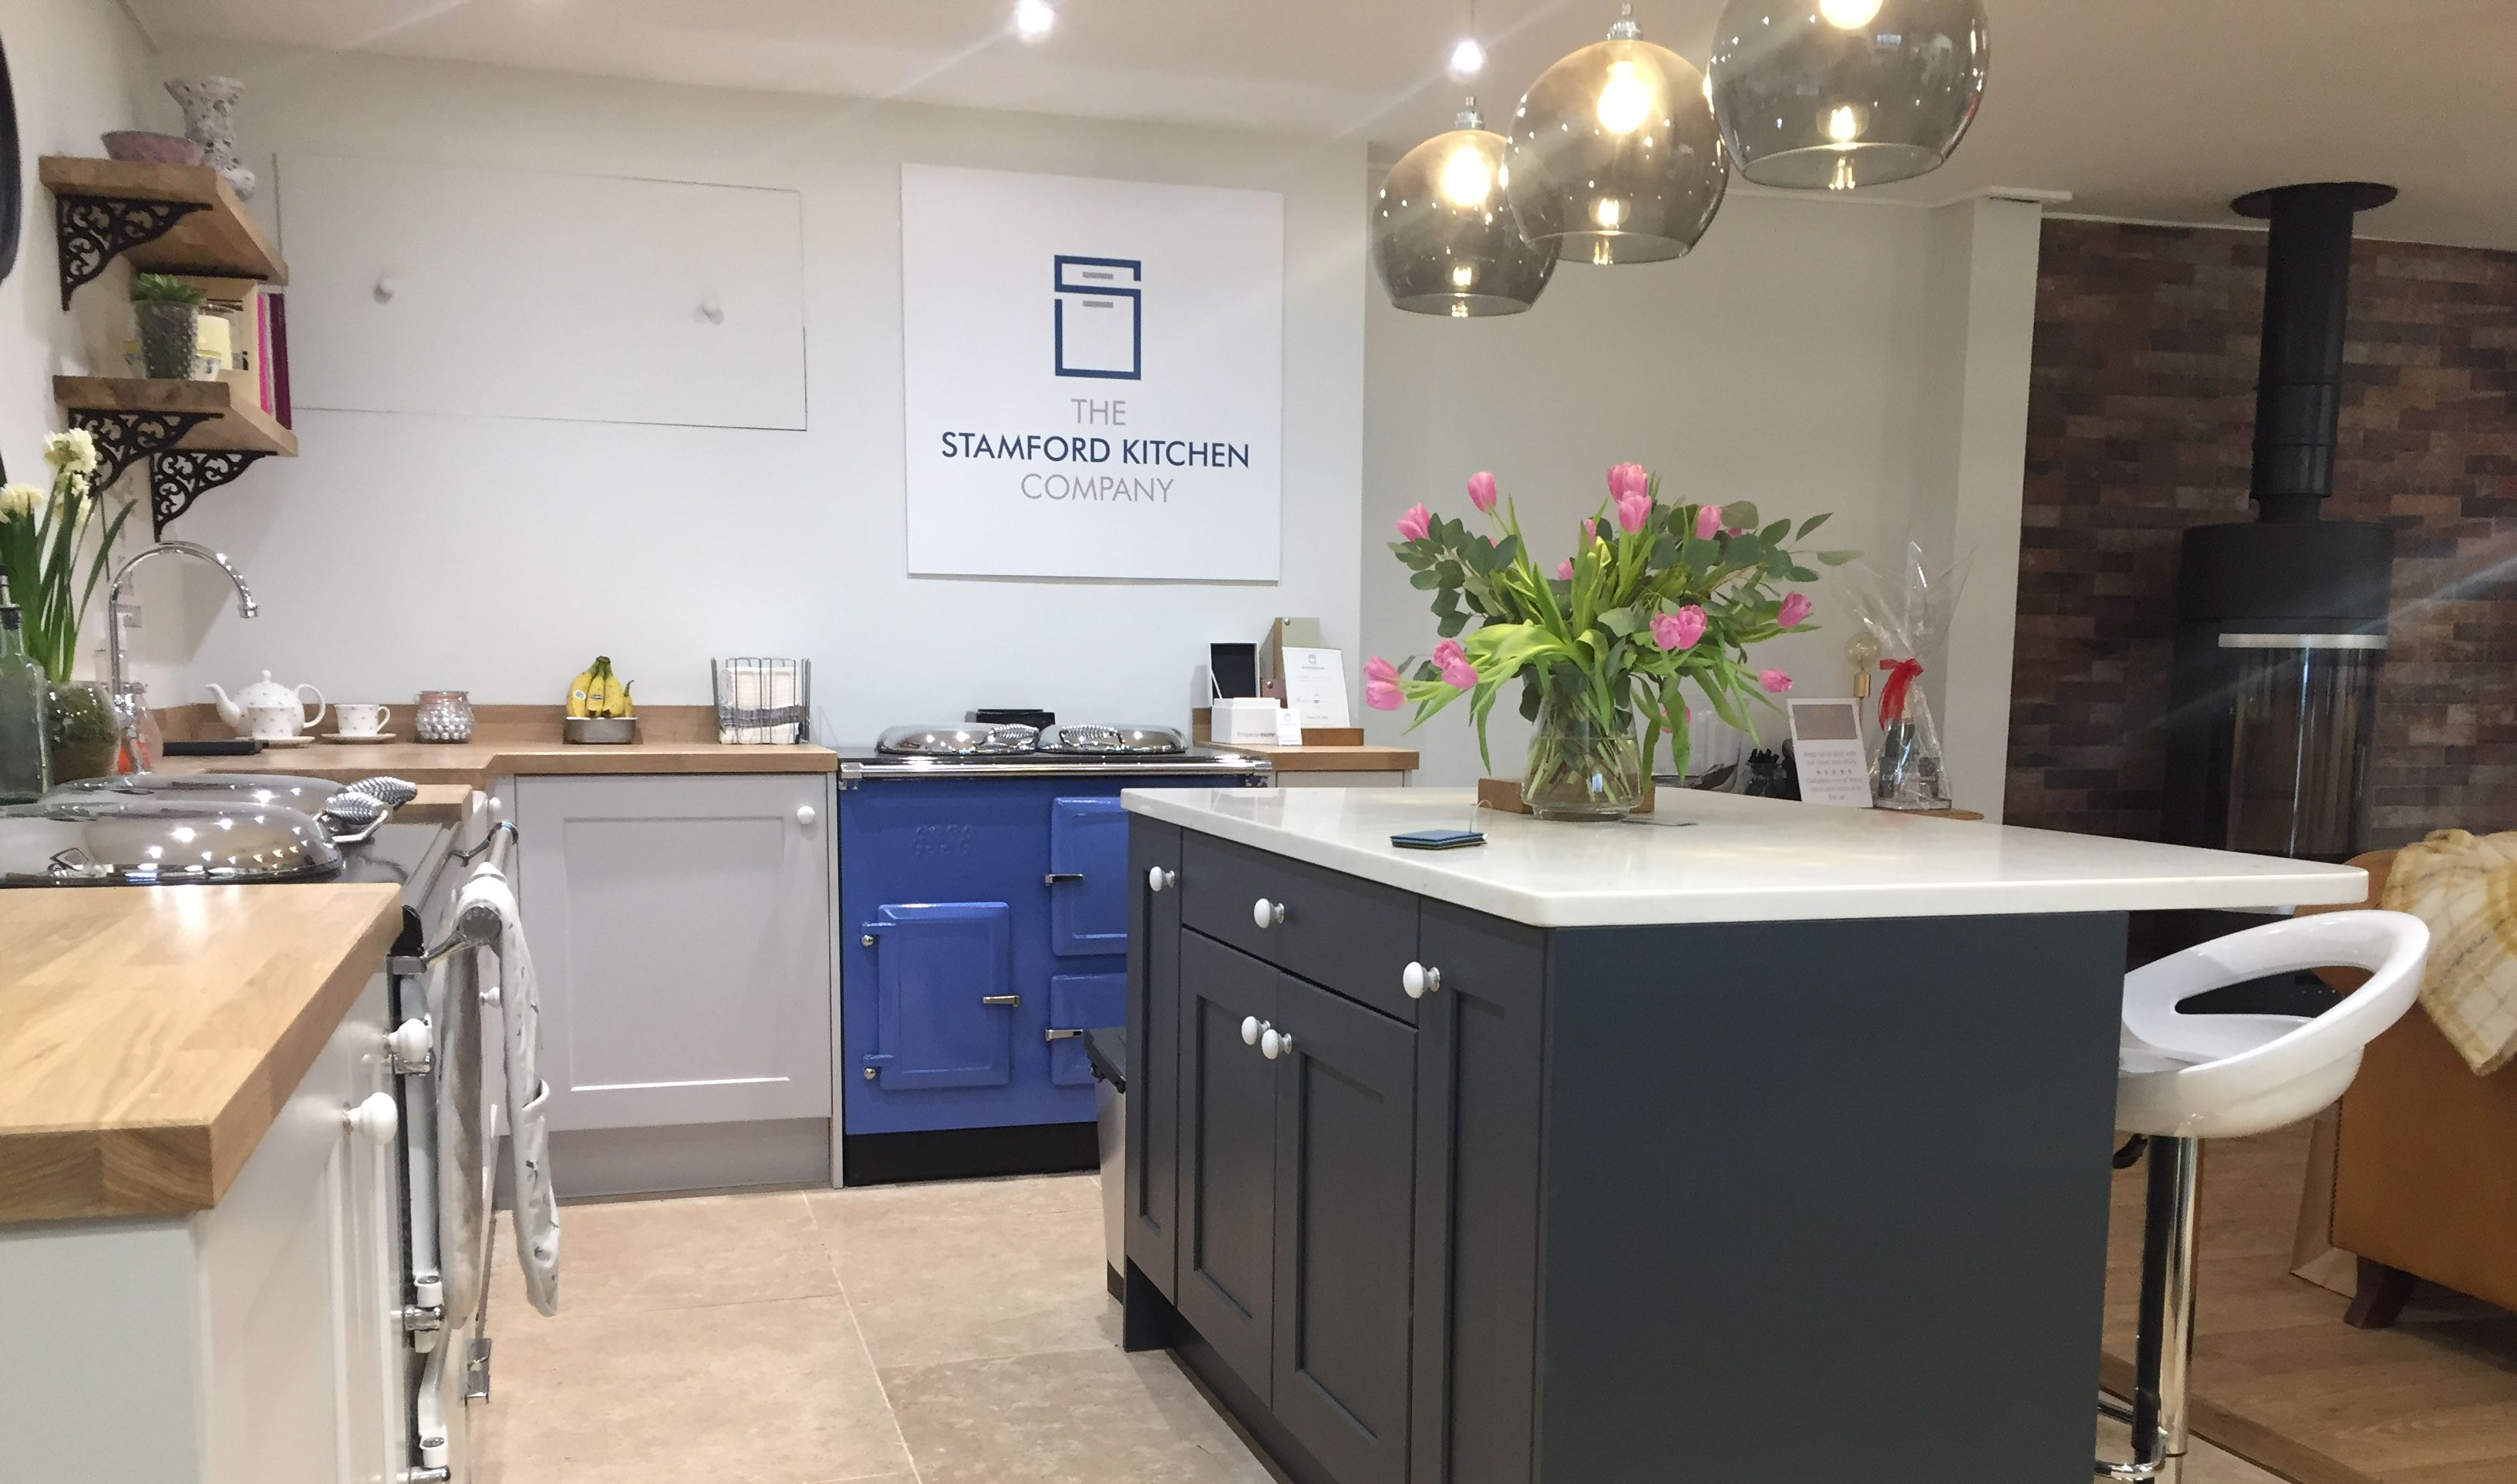 Kitchen Company Stamford Kitchen Company Get In Touch